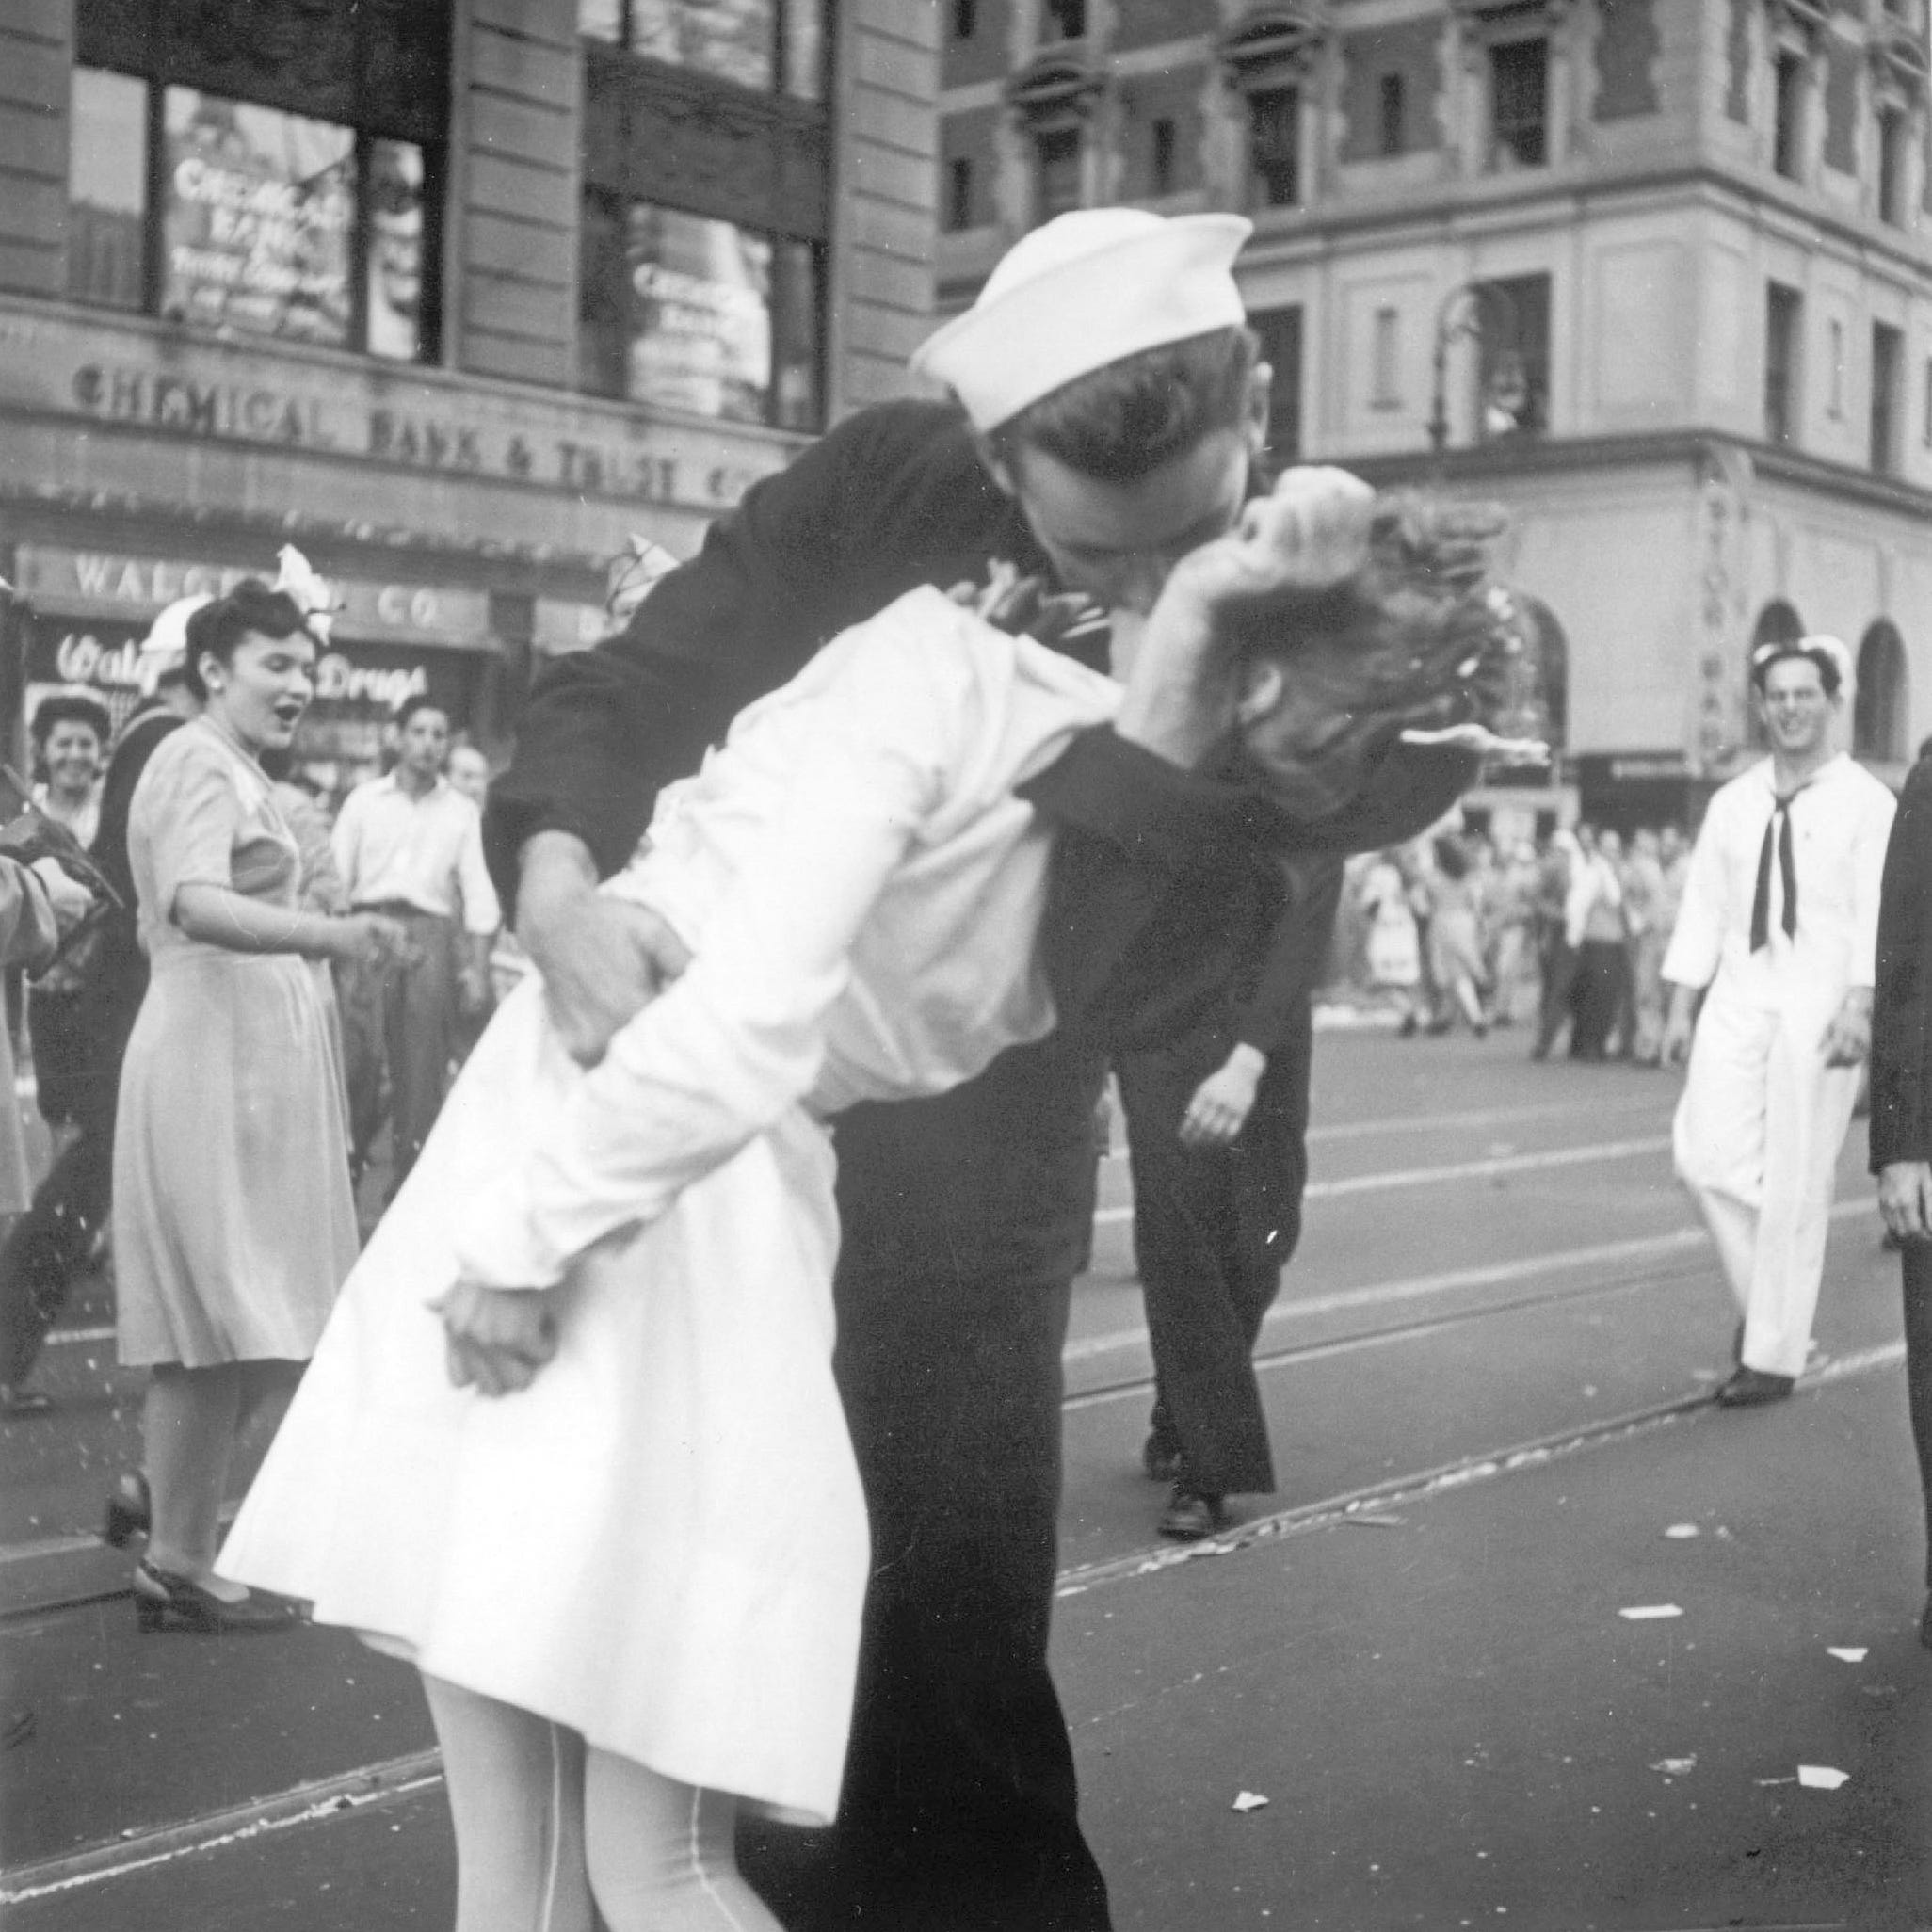 Sailor kissing woman in iconic V-J Day photo at Times Square dies at 95